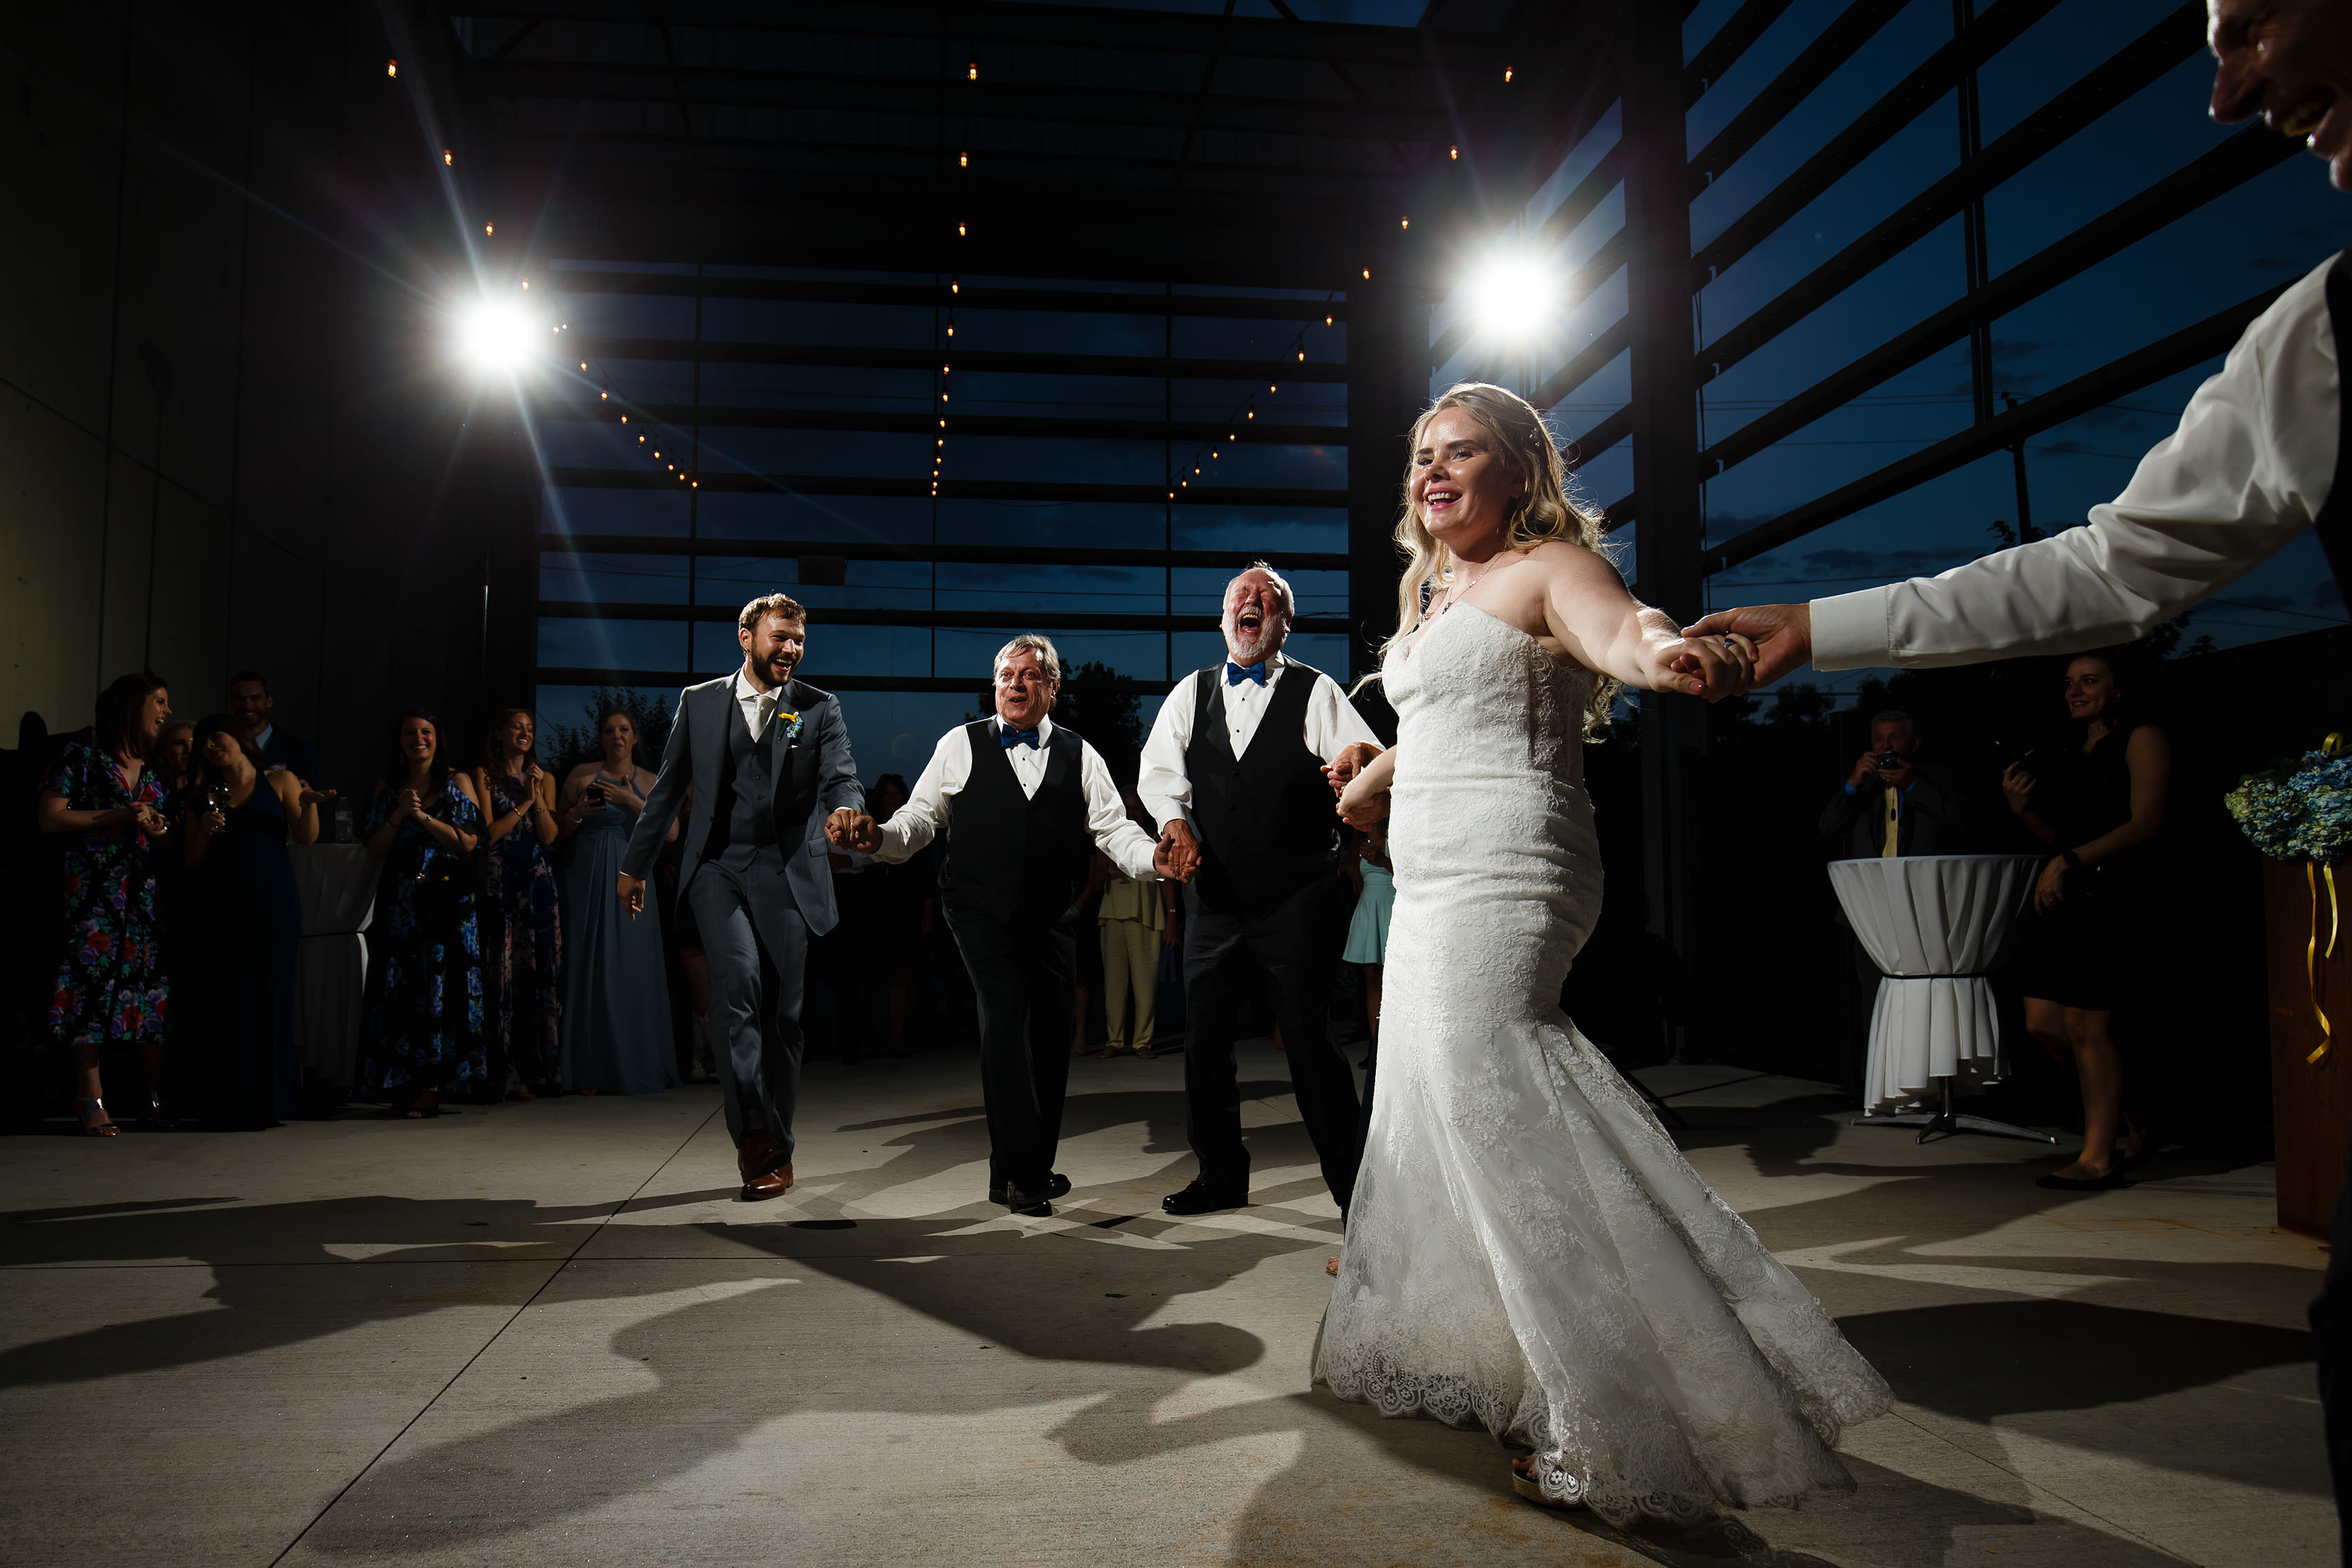 The bride and groom dance with their family during twilight at Space Gallery